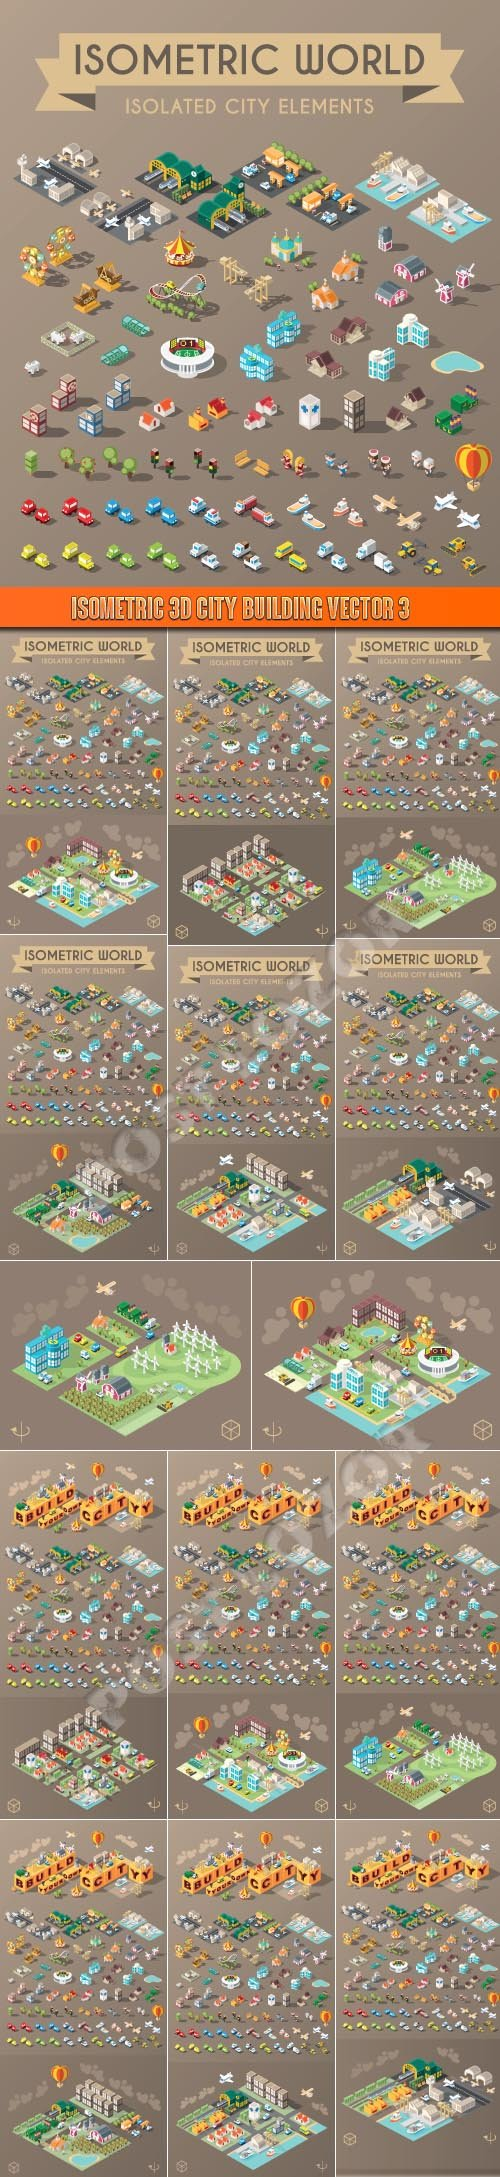 Isometric 3D city building vector 3